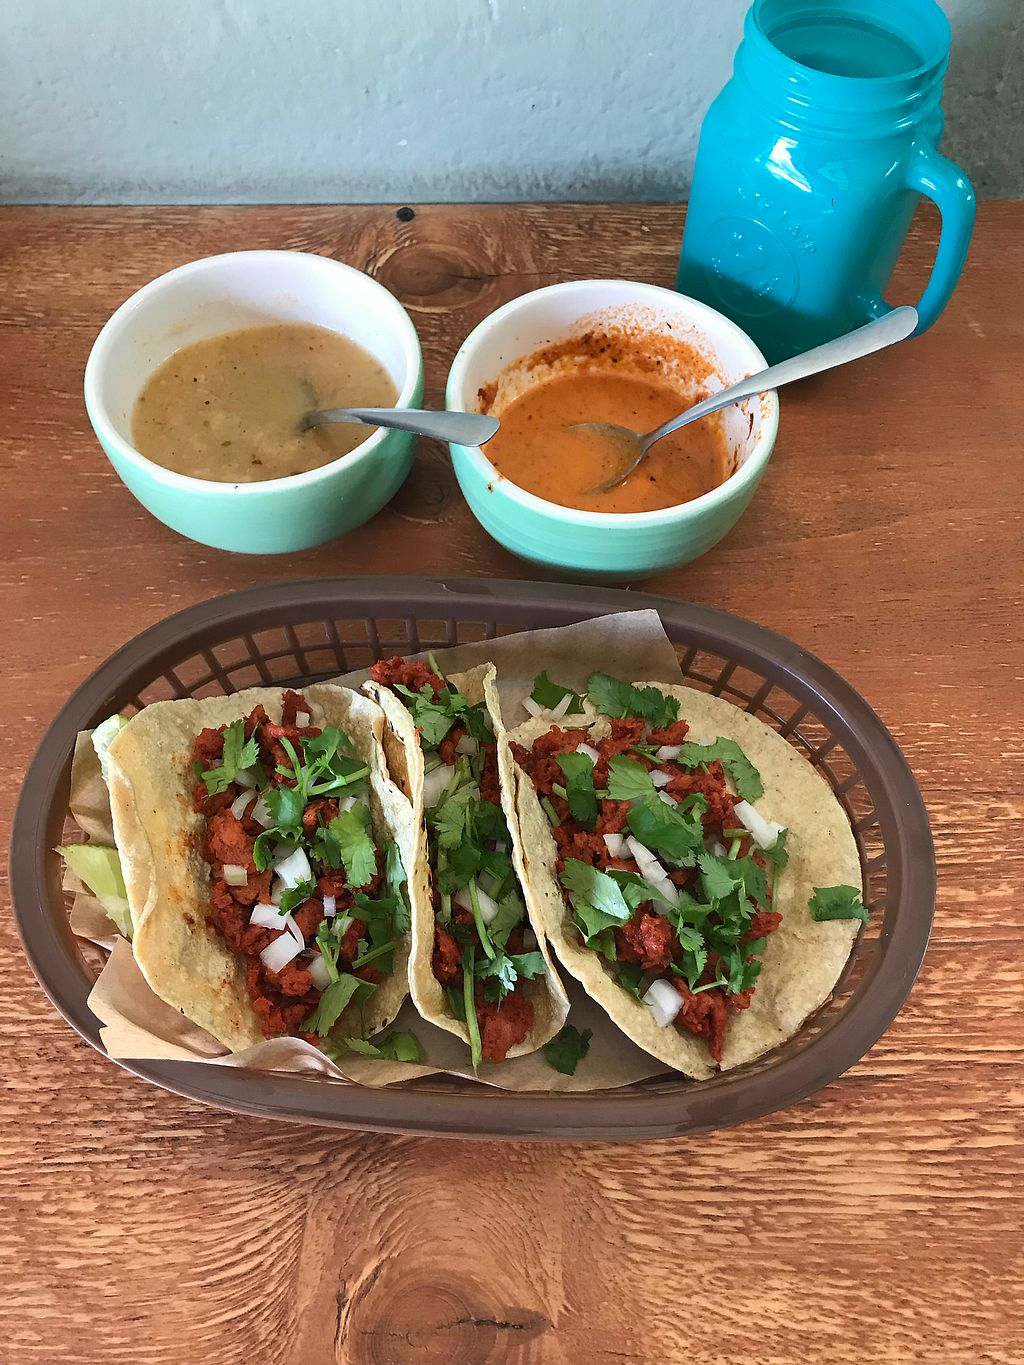 "Photo of Veggie Happy  by <a href=""/members/profile/rackoo"">rackoo</a> <br/>Delicious taco combo.  Soy tacos al pastor.  Housemade salsas and agua del dia.  Very good! <br/> January 14, 2018  - <a href='/contact/abuse/image/106534/346558'>Report</a>"